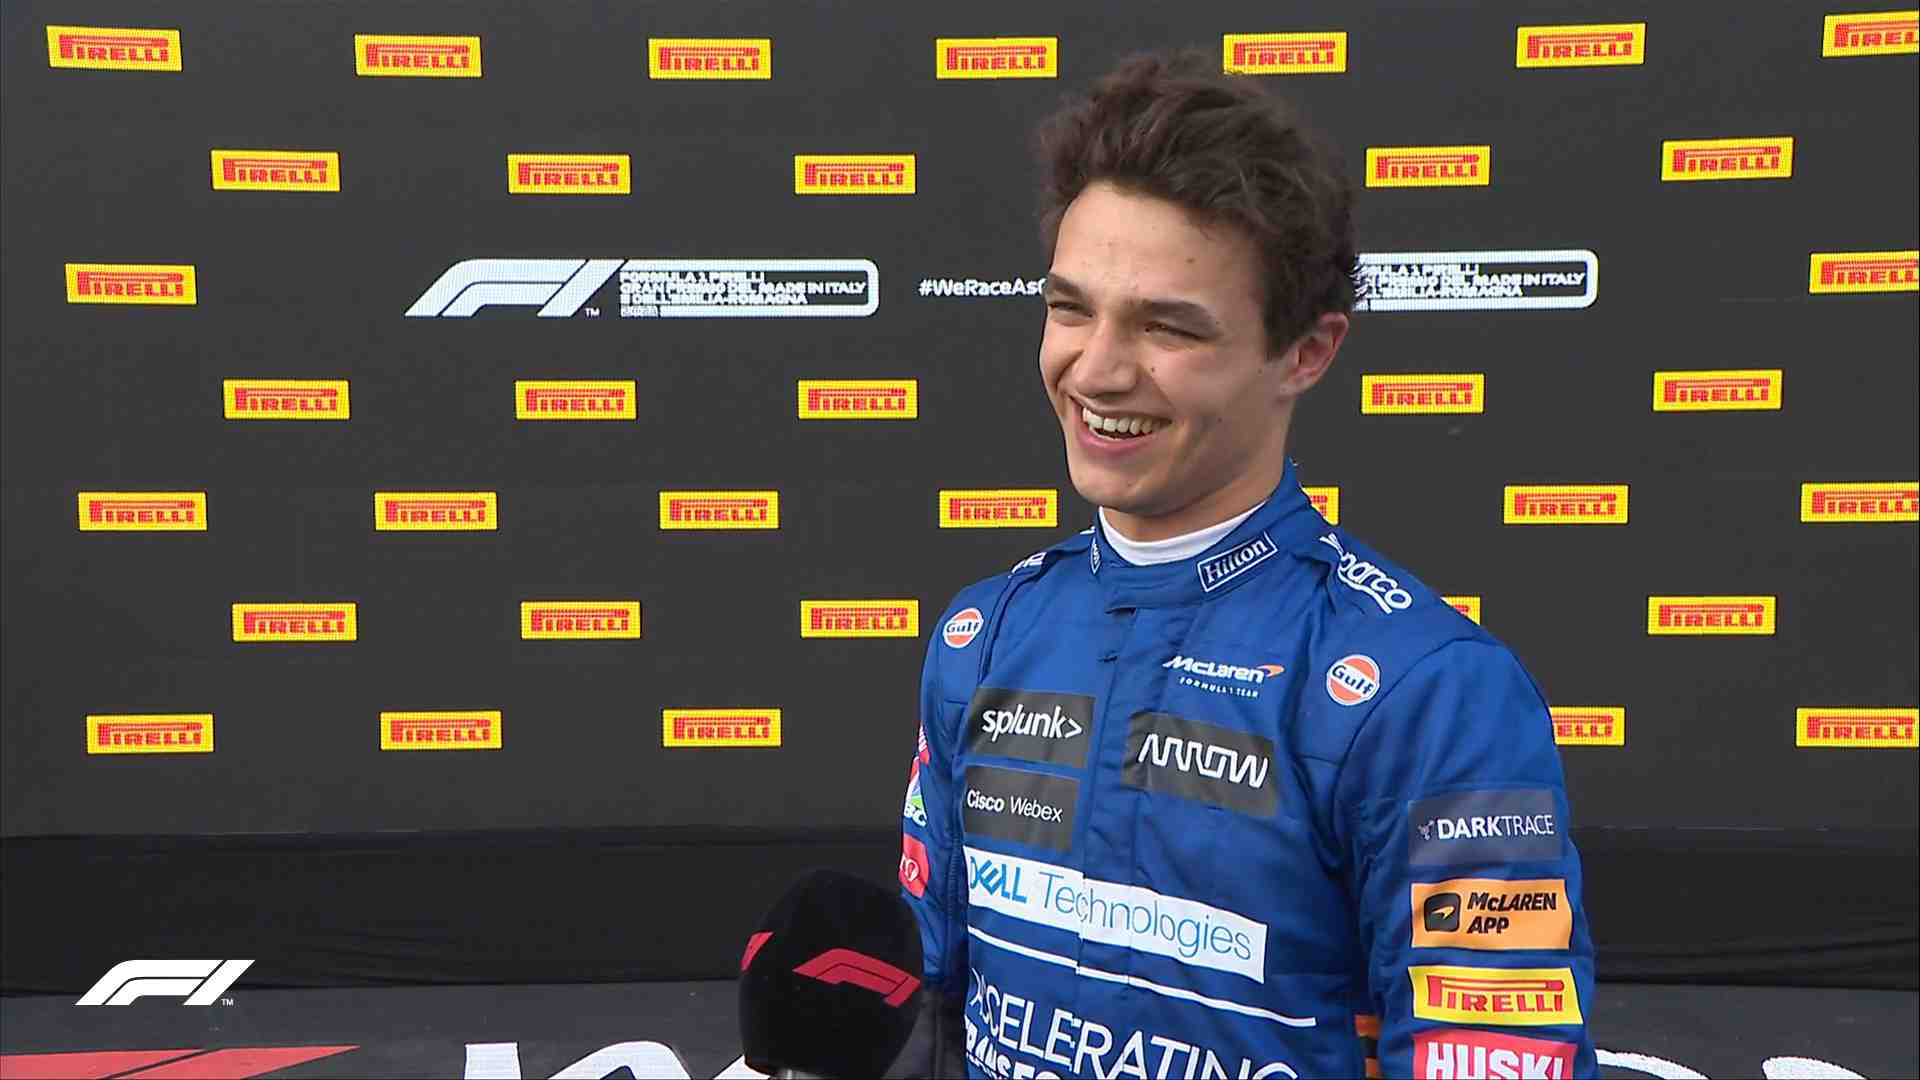 Lando Norris claims P1 is worth the risk when Ferrari's Charles Leclerc missed the opportunity to go ahead of Max Verstappen at the Emilia Romagna Grand Prix.